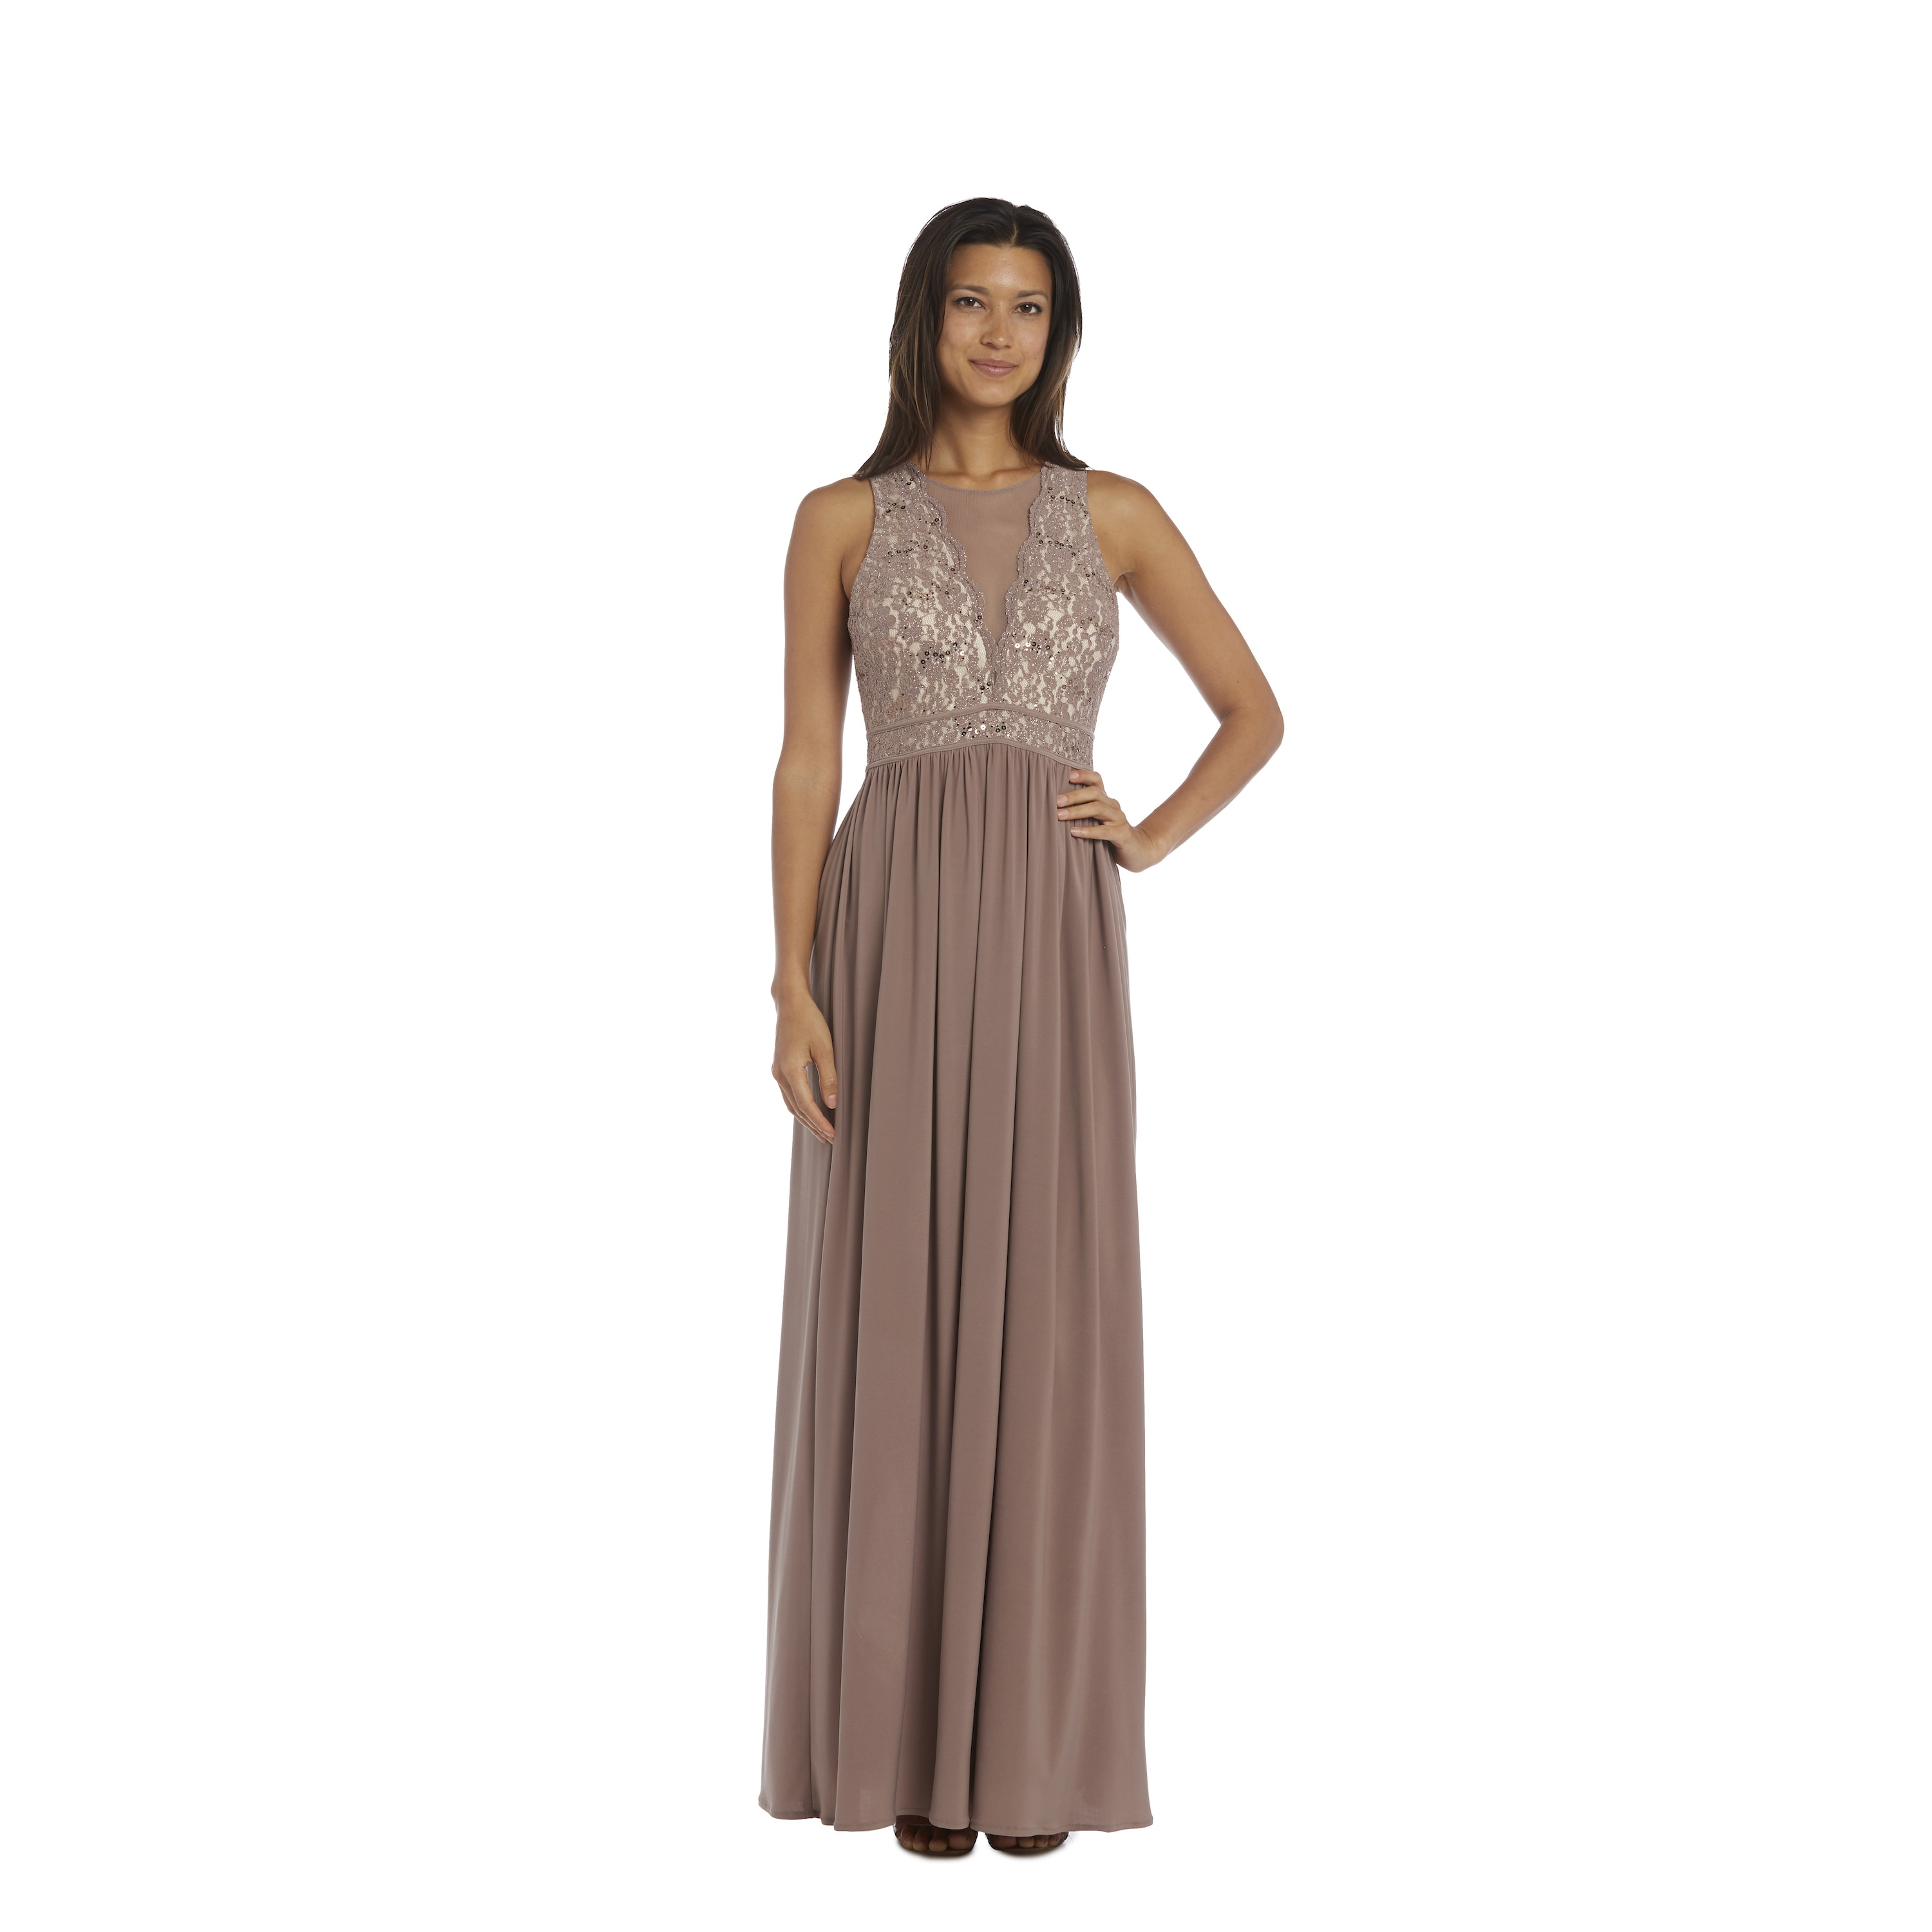 Shop Nightway Ivory and Taupe Lace Evening Gown - Free Shipping ...